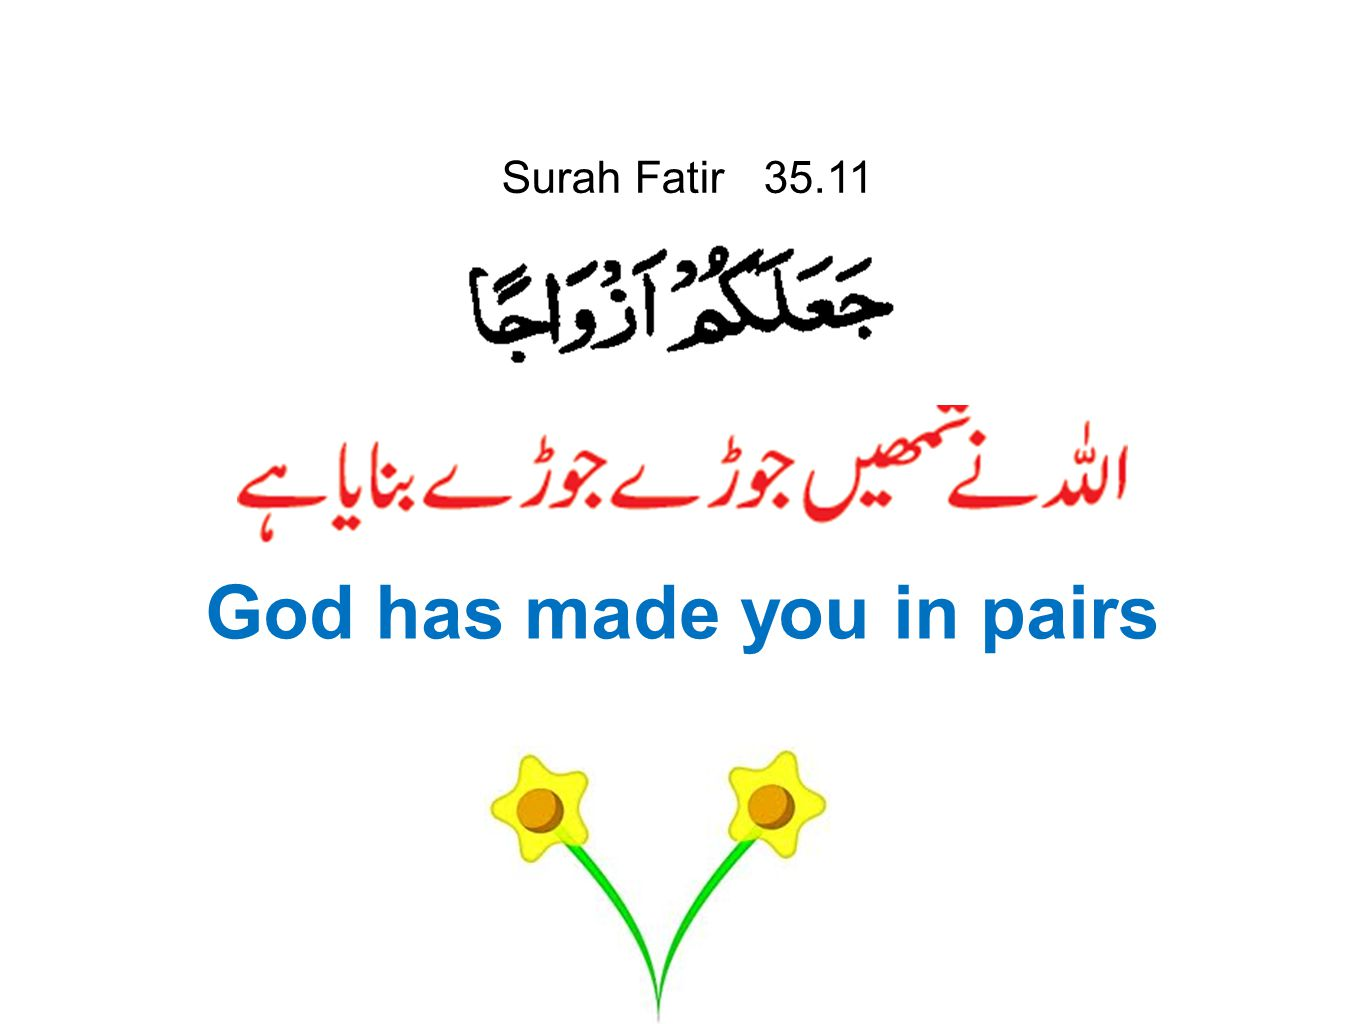 God has made you in pairs